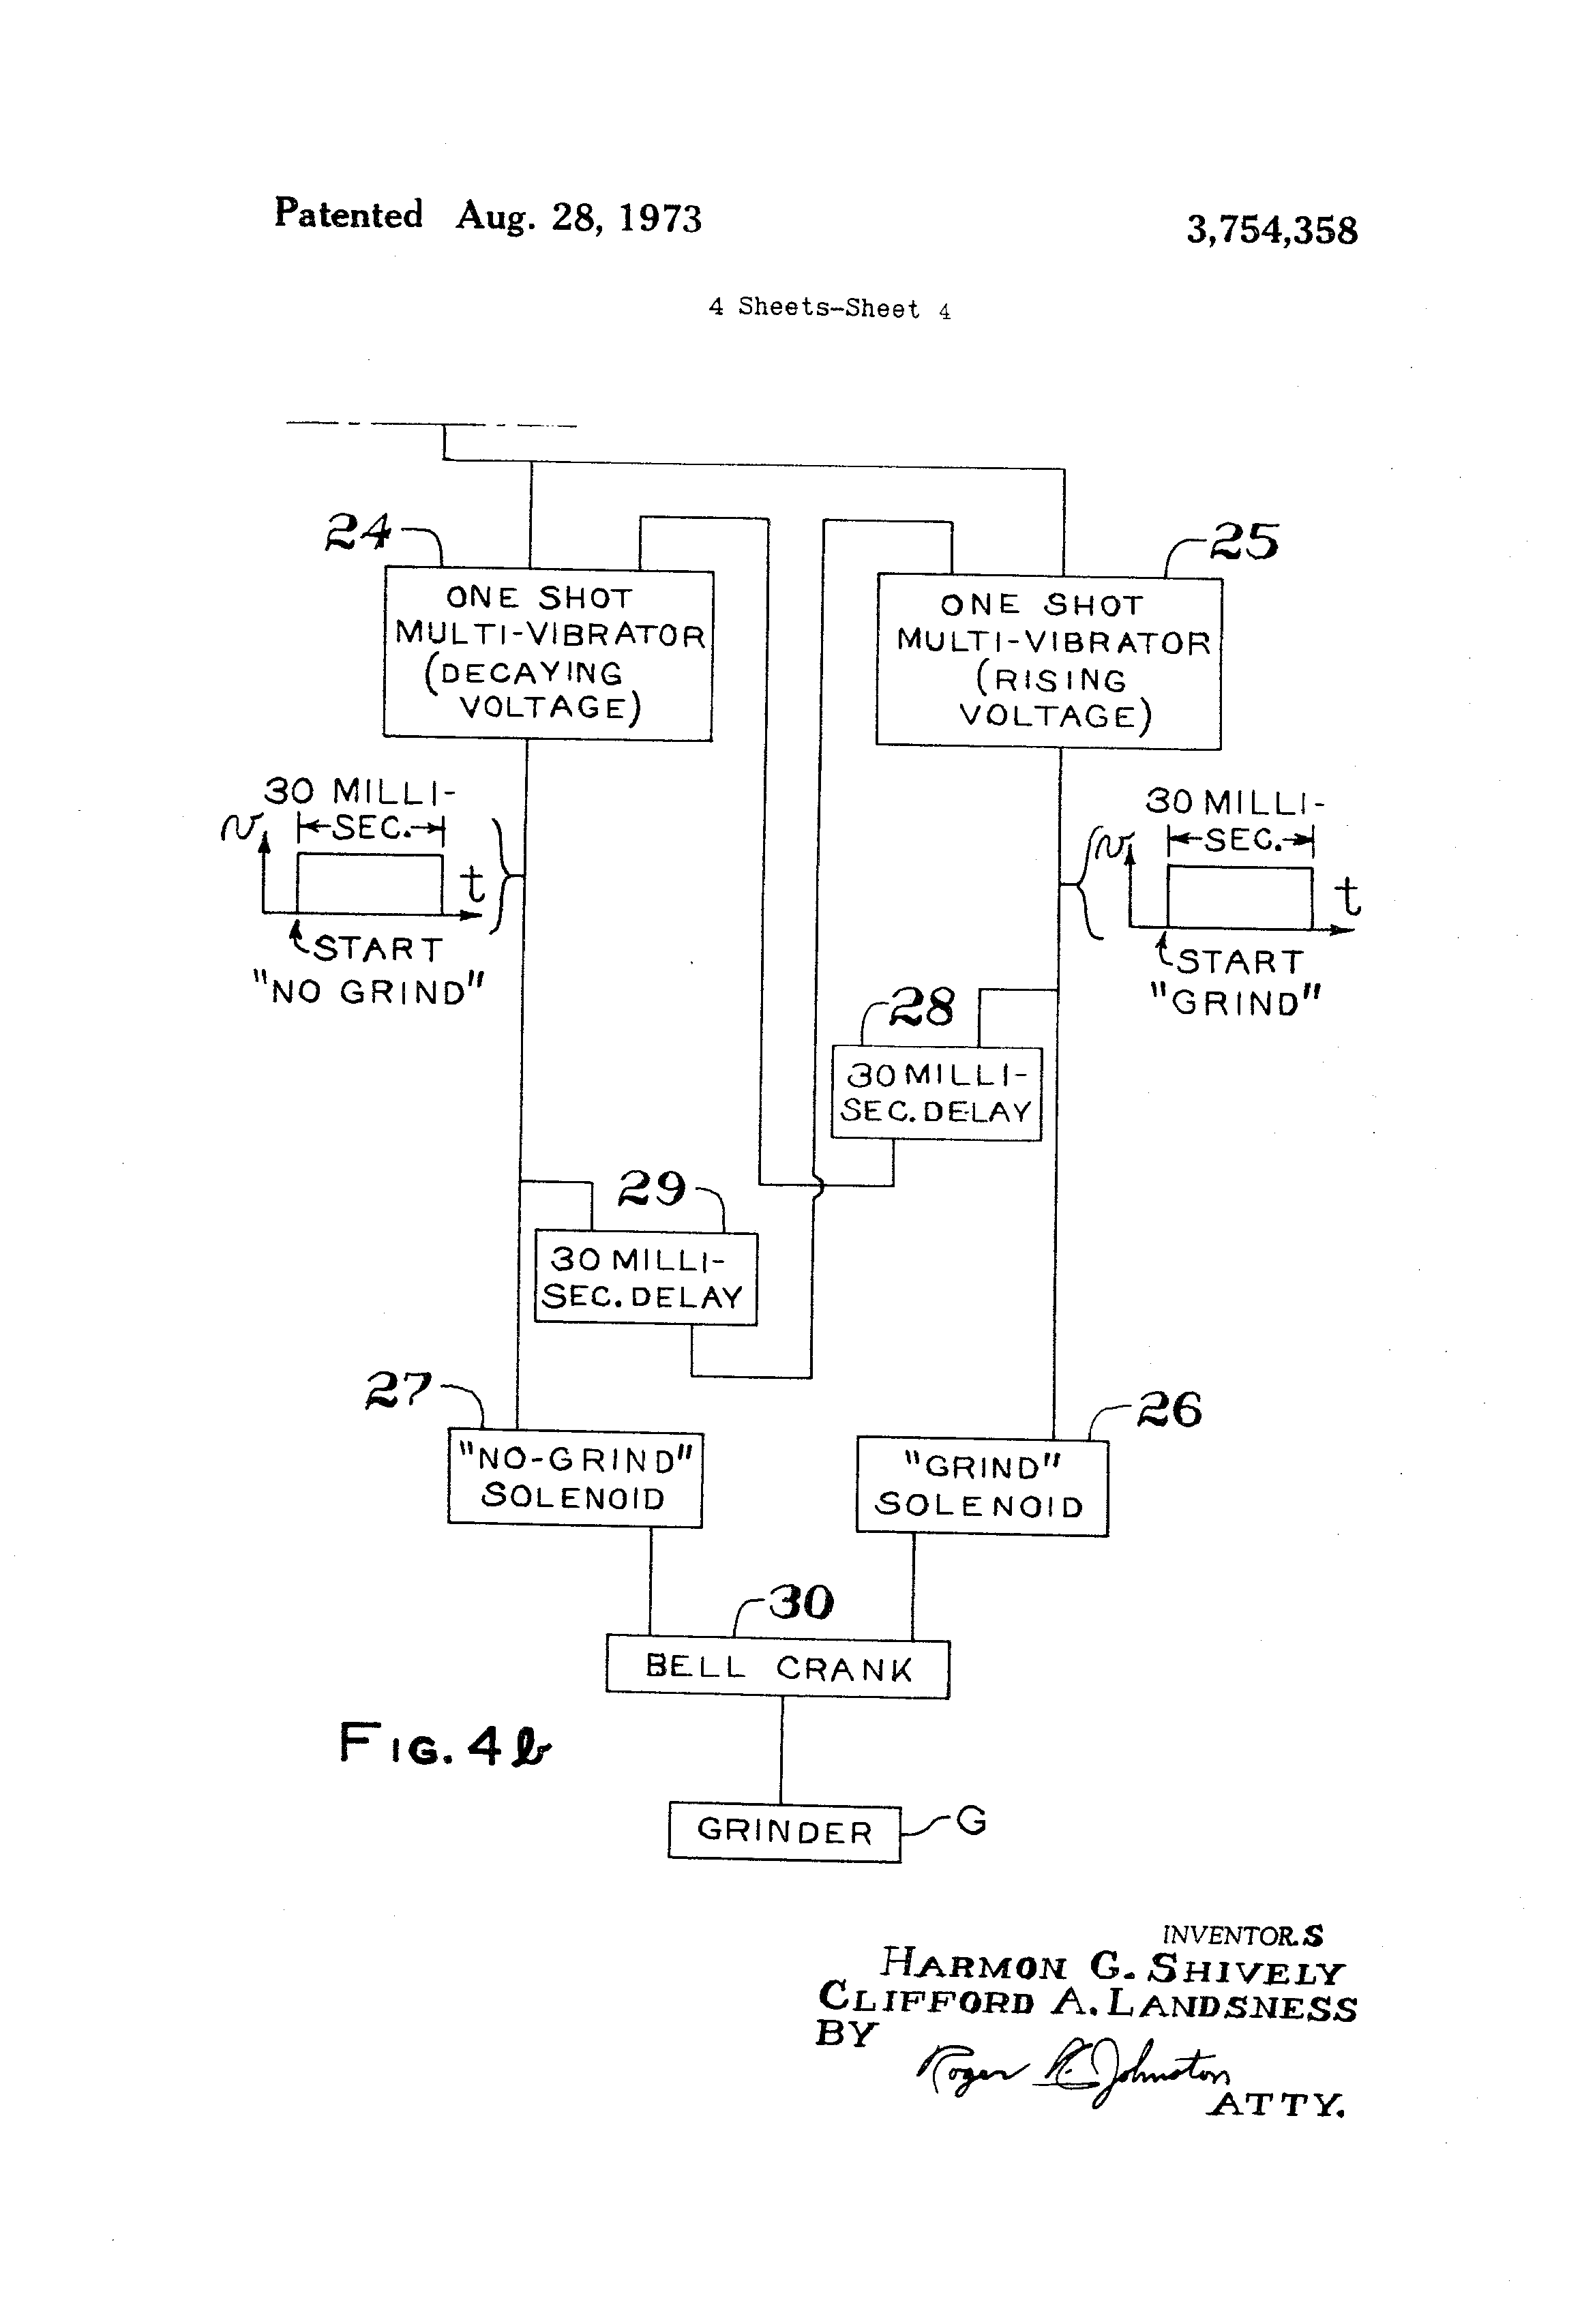 Brevet Us3754358 Method For Correcting Non Uniformity In A Often Called One Shot Multivibrator Is Pulse Generating Circuit Patent Drawing